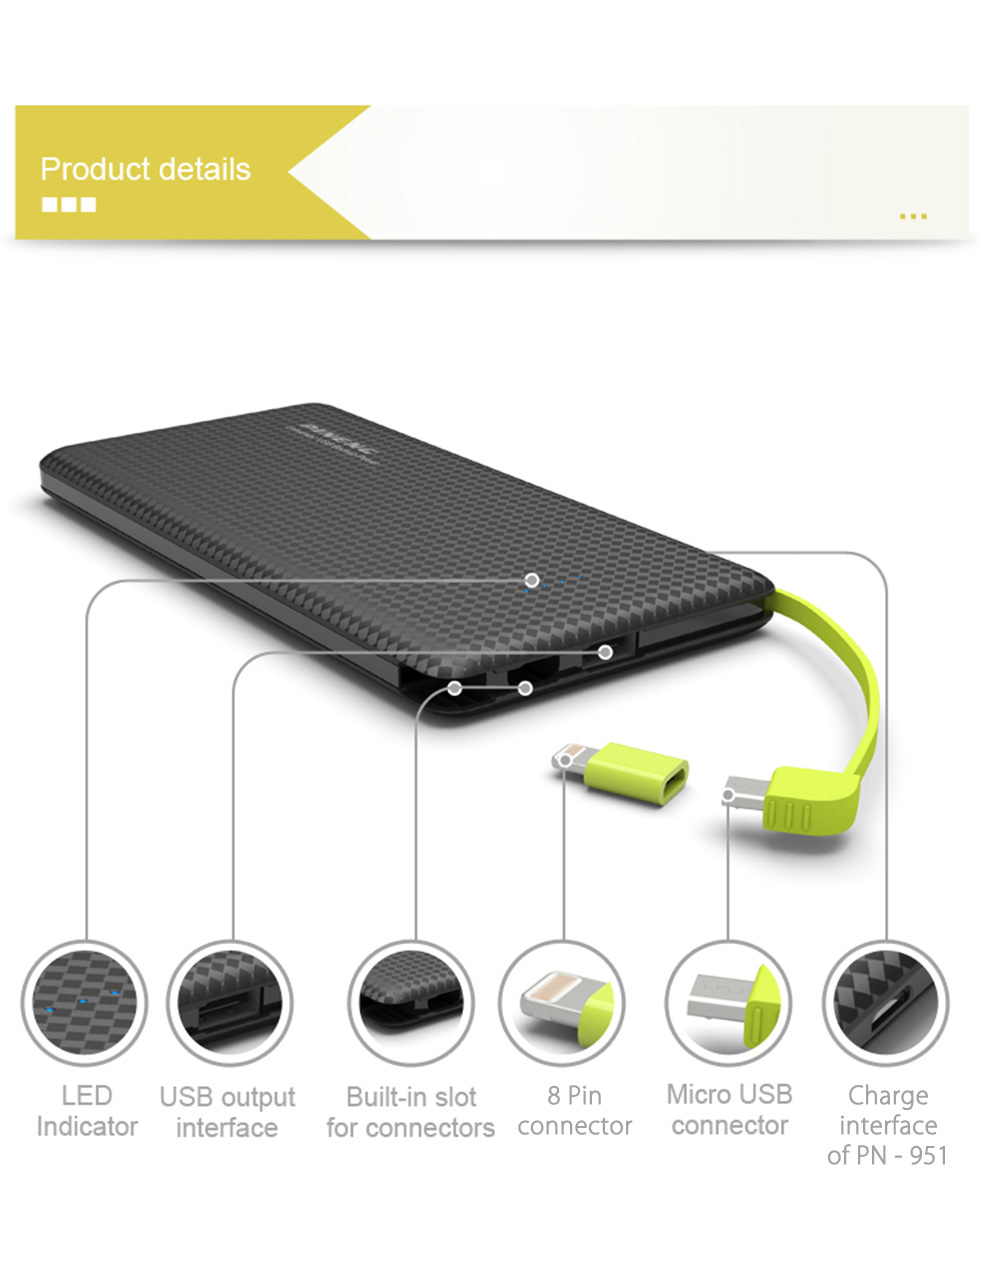 PINENG PN - 951 10000mAh Power Bank Dual Outputs Built-in Vibrating Switch Micro USB Cable Portable Charger